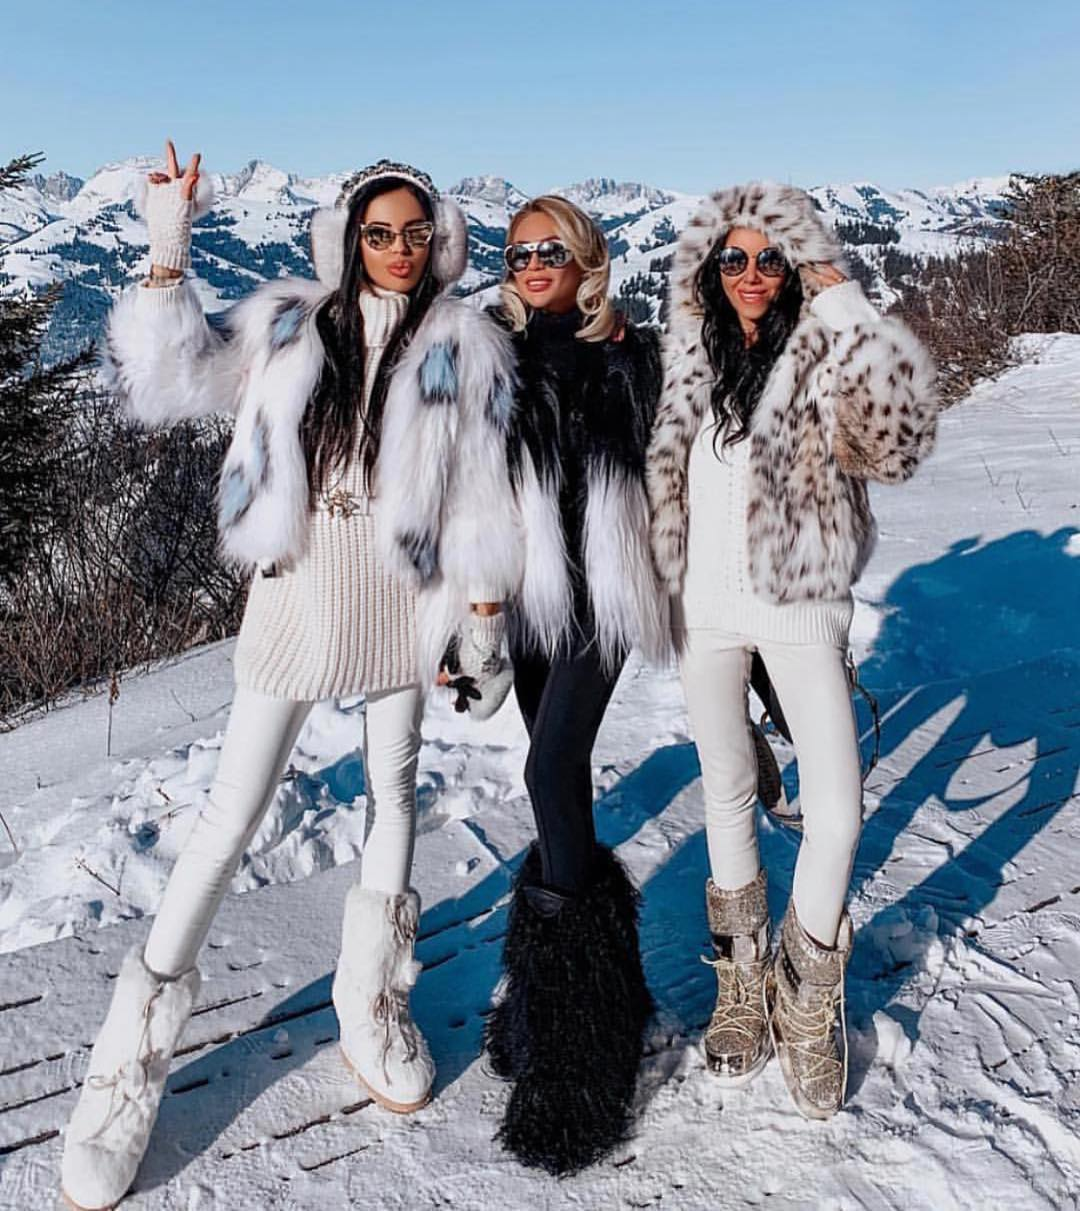 Fur Jackets With Skinny Jeans And Fur Boots For Winter 2019